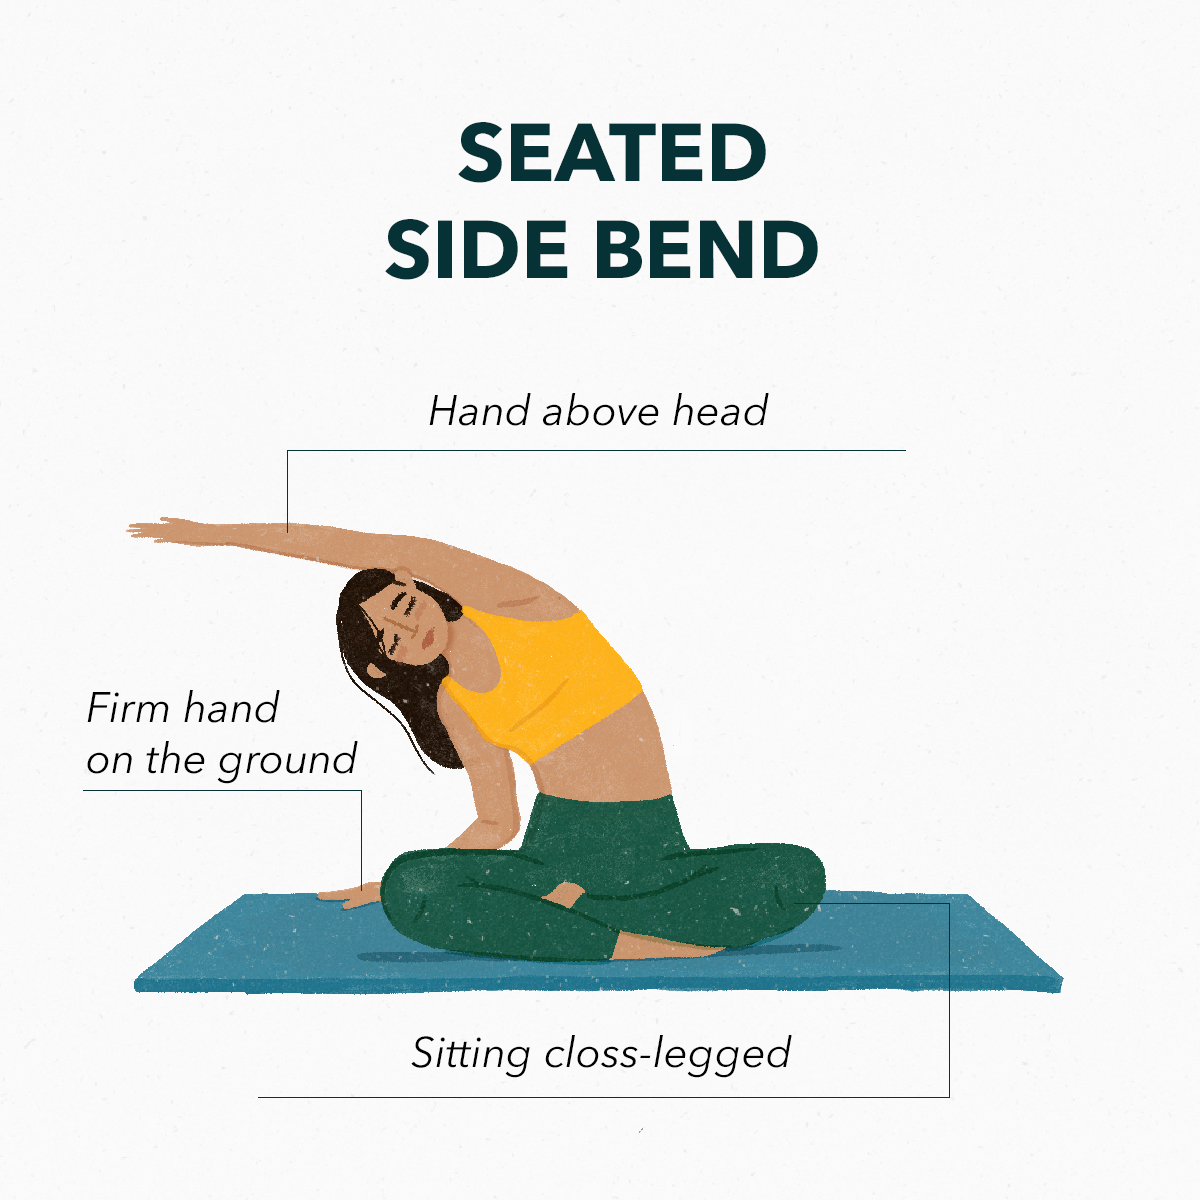 Seated side bend | Basic stretches